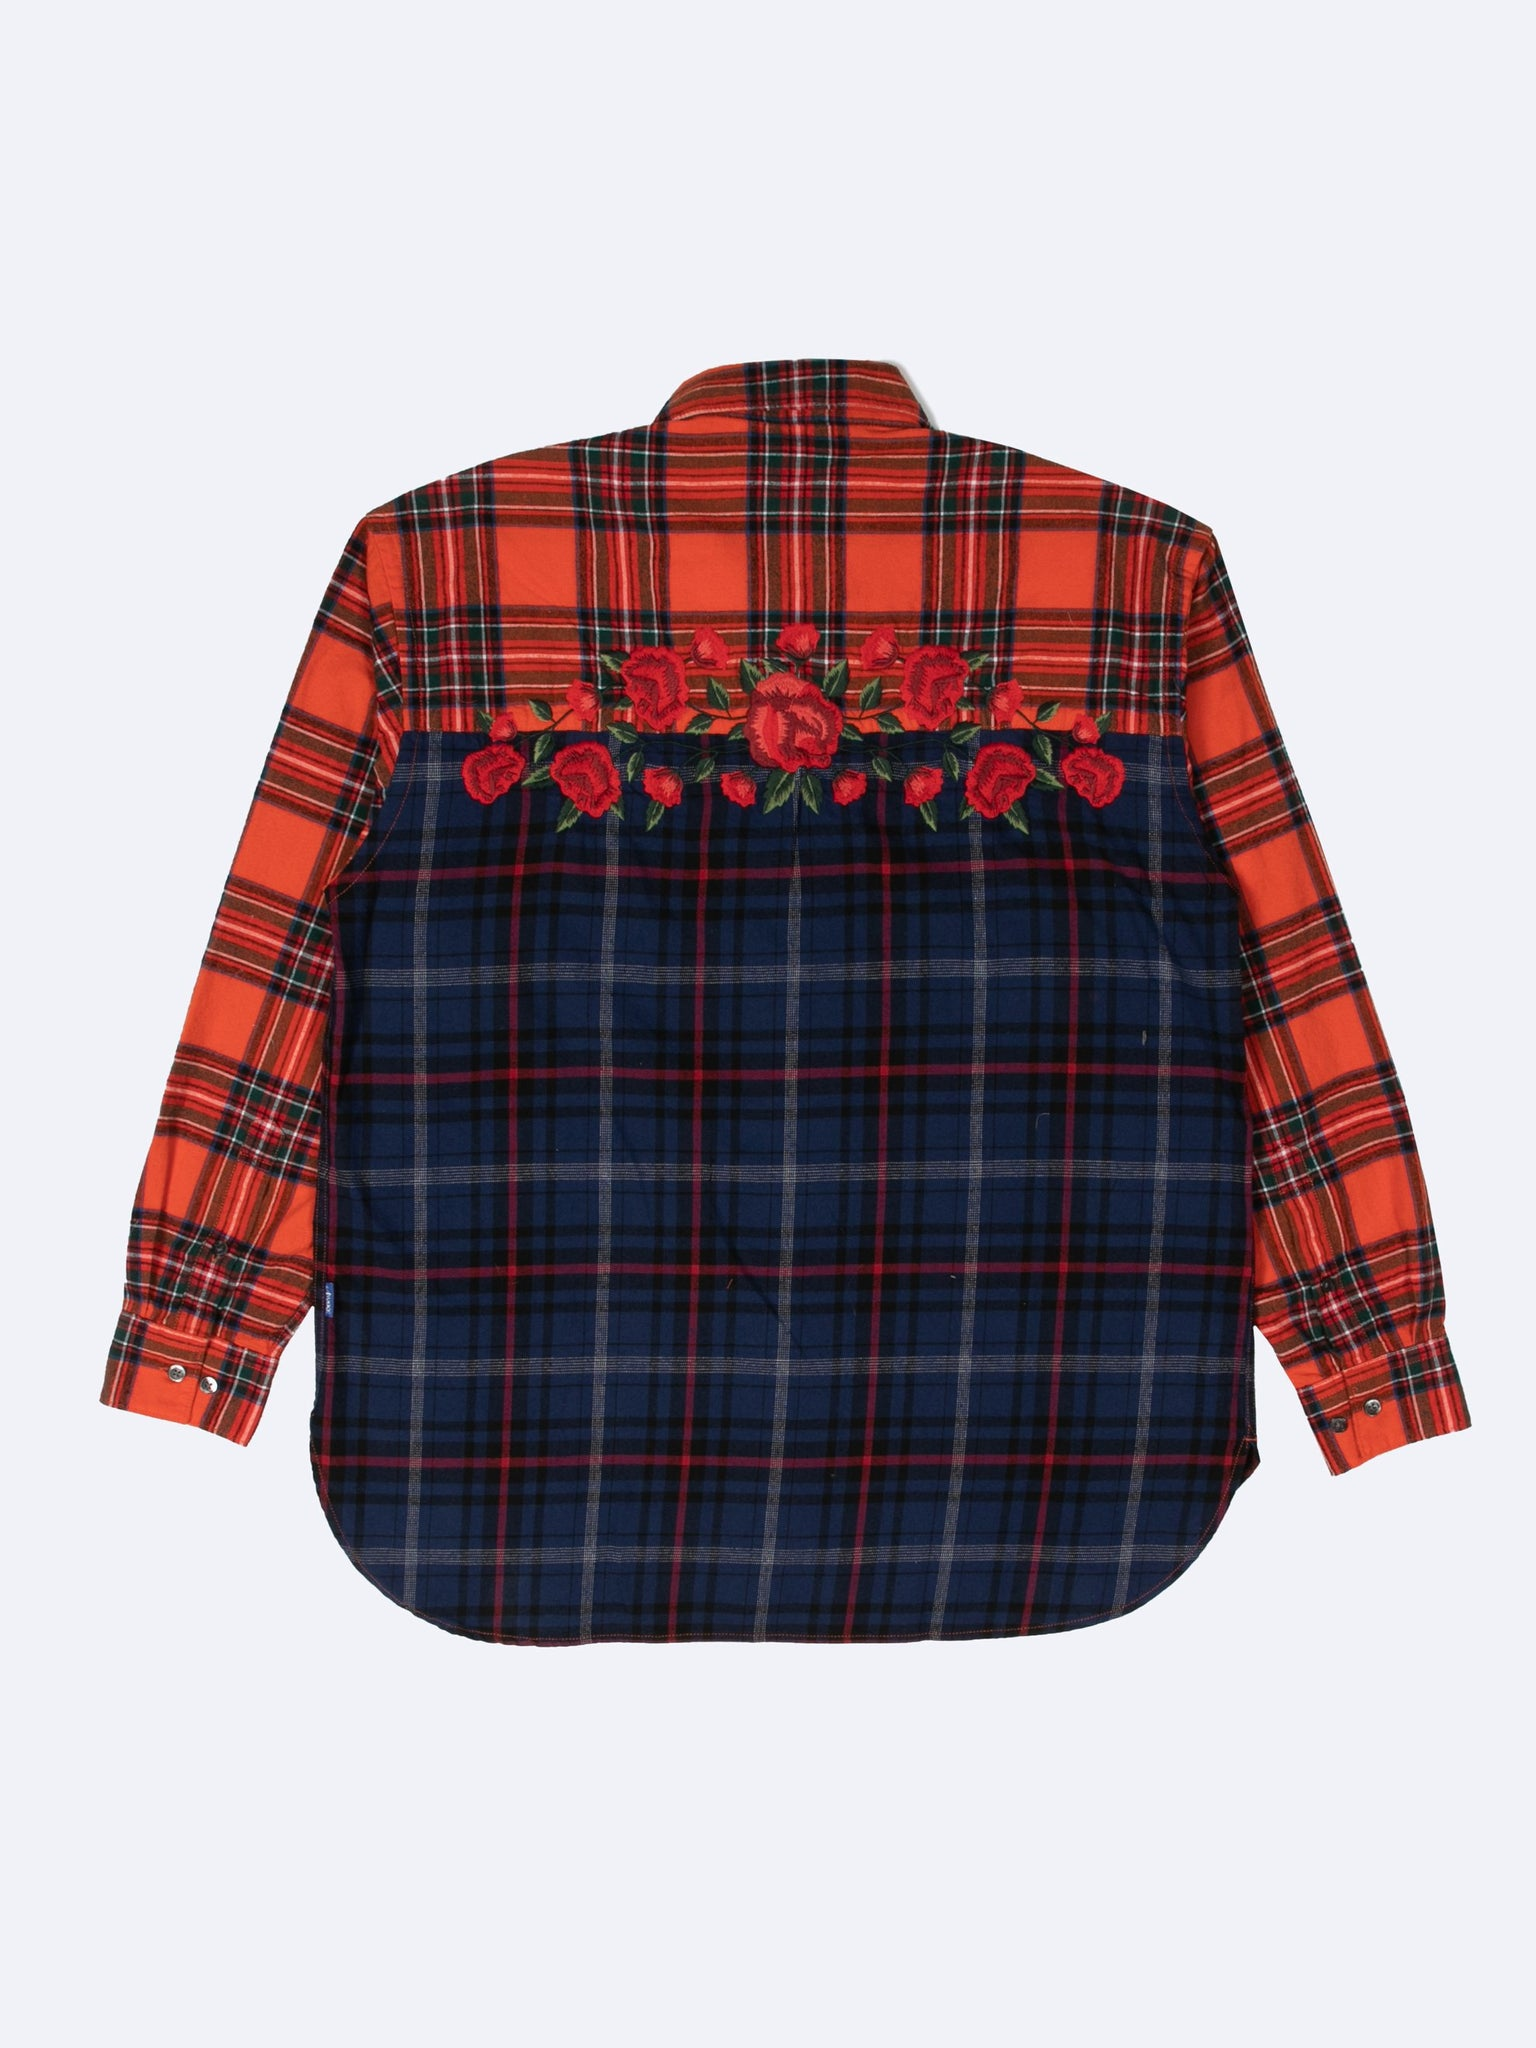 embroidered-rose-flannel